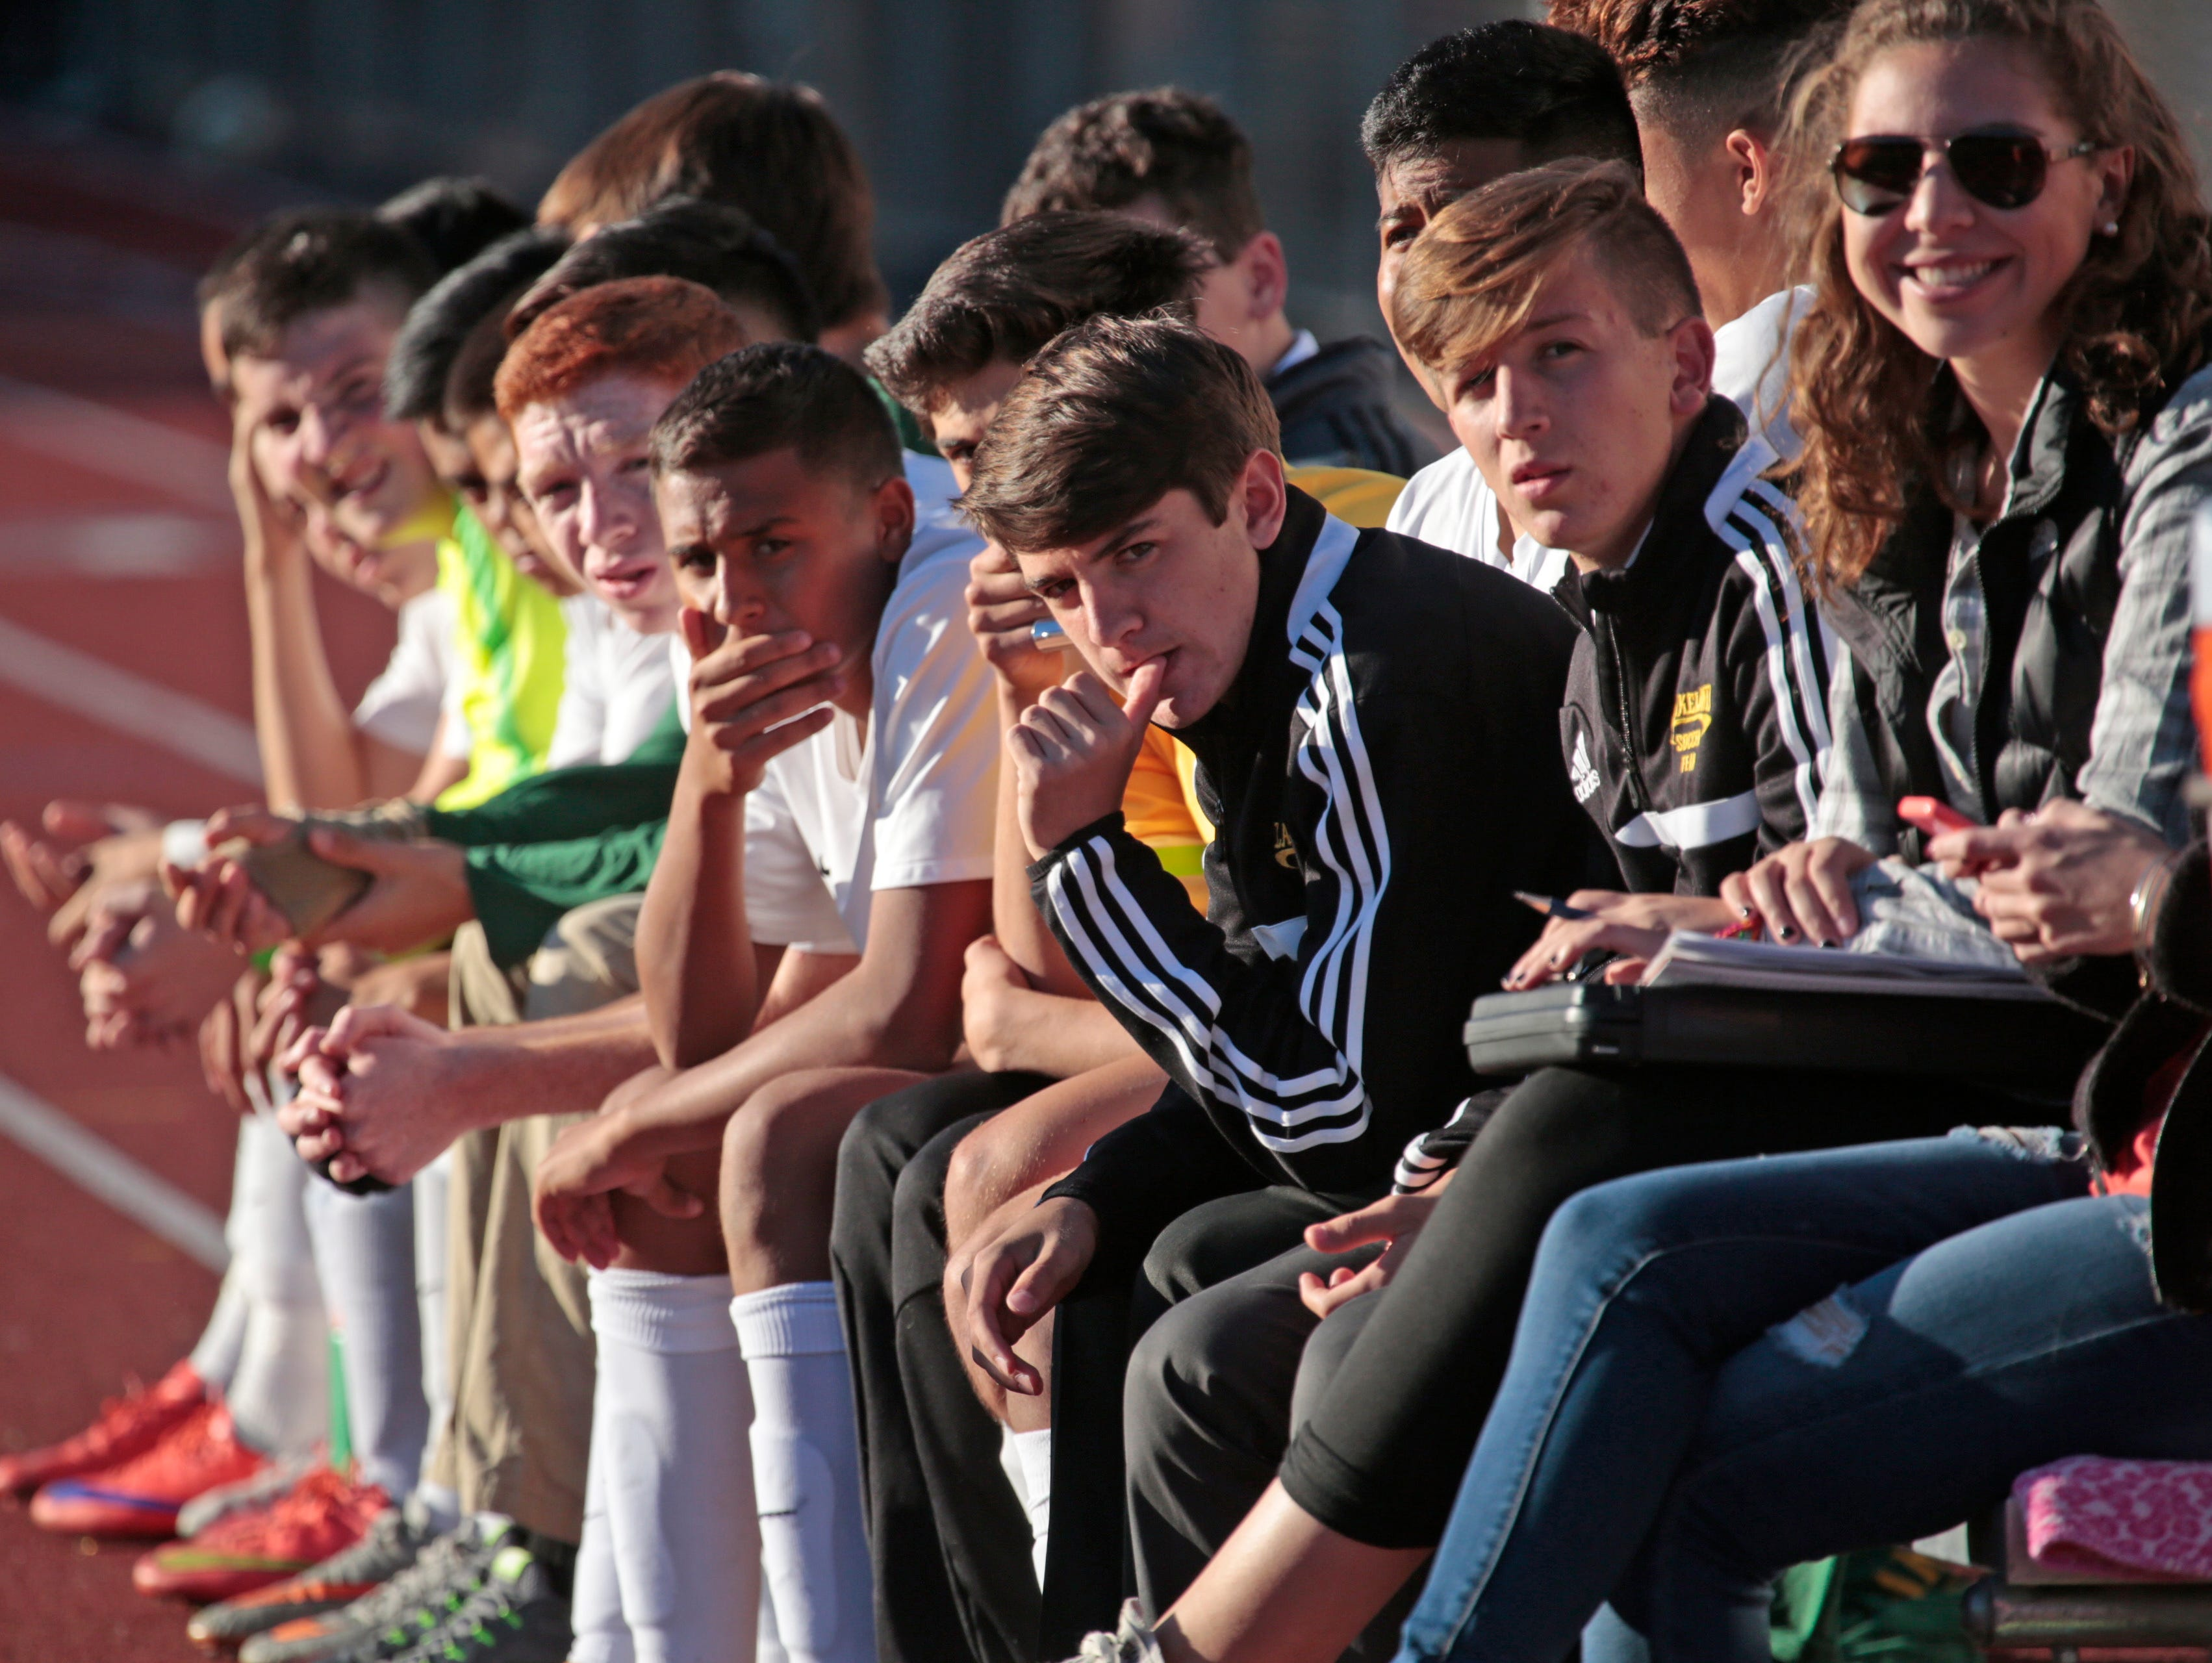 Members of Lakeland's soccer team watch the game from the bench against Eastcheser at Lakeland High School in Shrub Oak on Oct. 26, 2015.